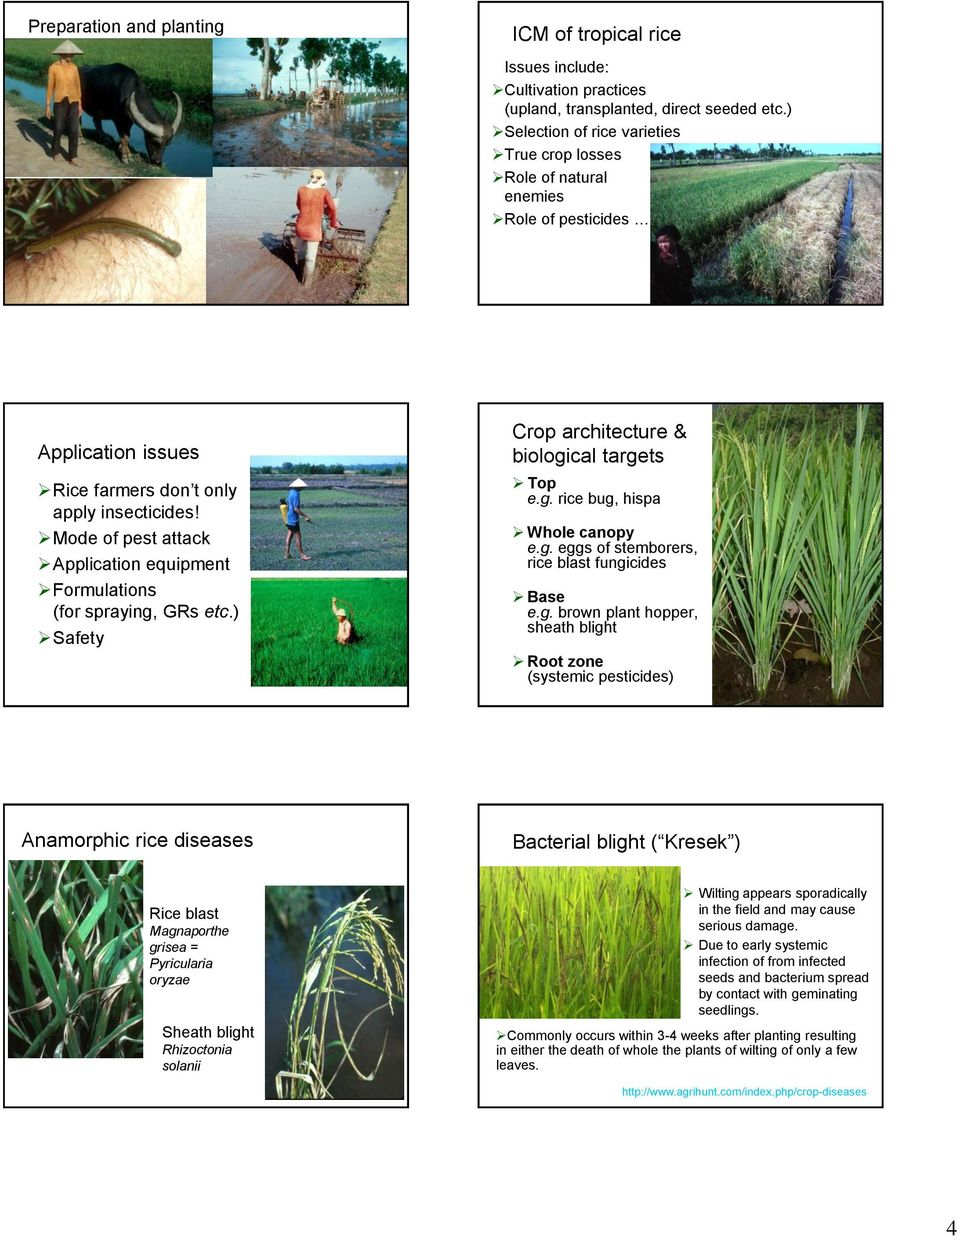 Mode of pest attack Application equipment Formulations (for spraying, GRs etc.) Safety Crop architecture & biological targets Top e.g. rice bug, hispa Whole canopy e.g. eggs of stemborers, rice blast fungicides Base e.